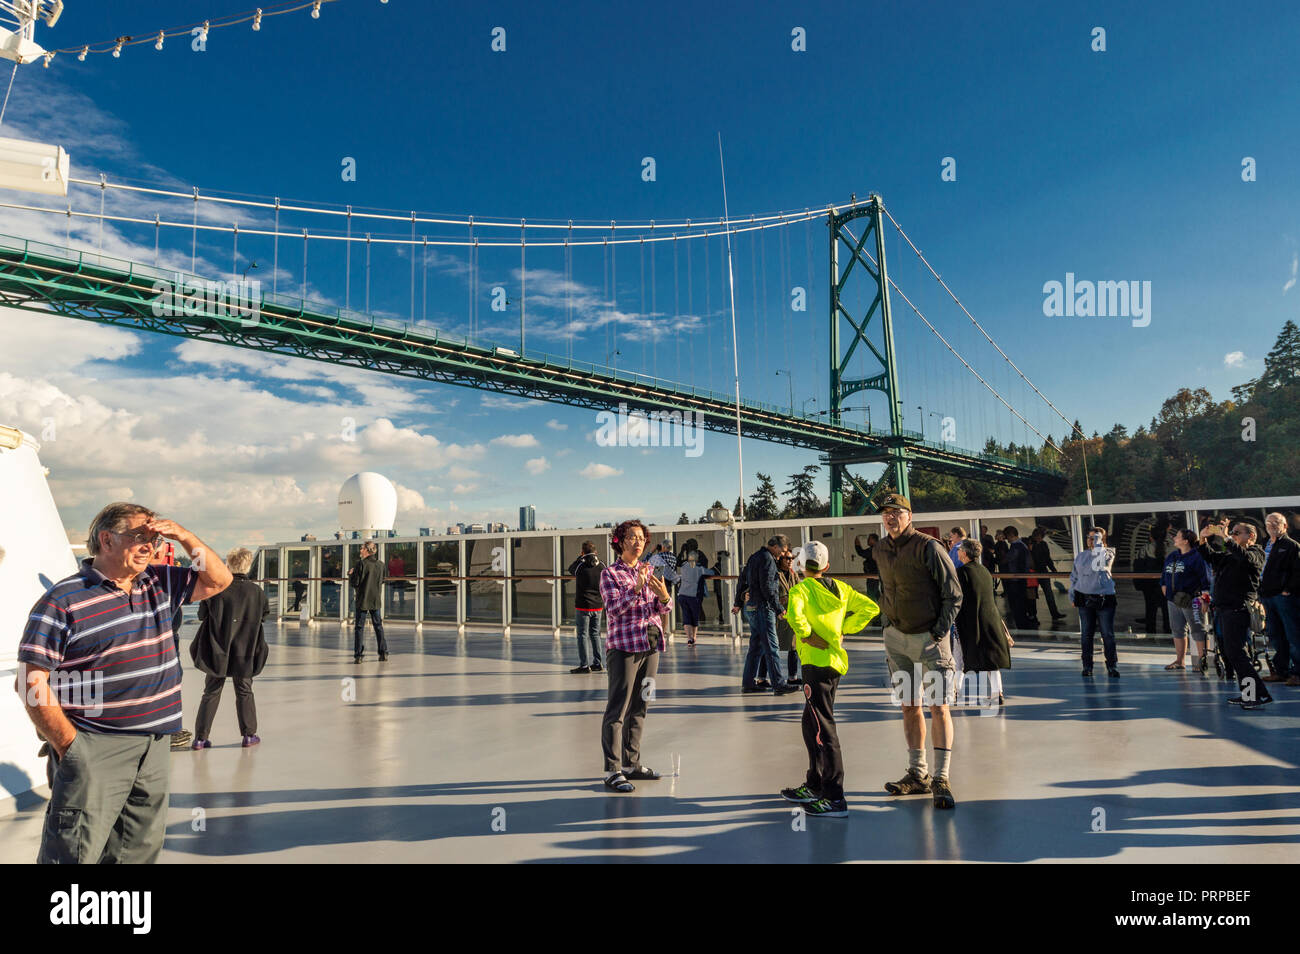 Cruise ship passengers on top deck of Holland America The Volendam, as it passes under The Lions Gate Bridge in Burrard Inlet, Vancouver, British Columbia, Canada enroute to Alaska, USA. - Stock Image